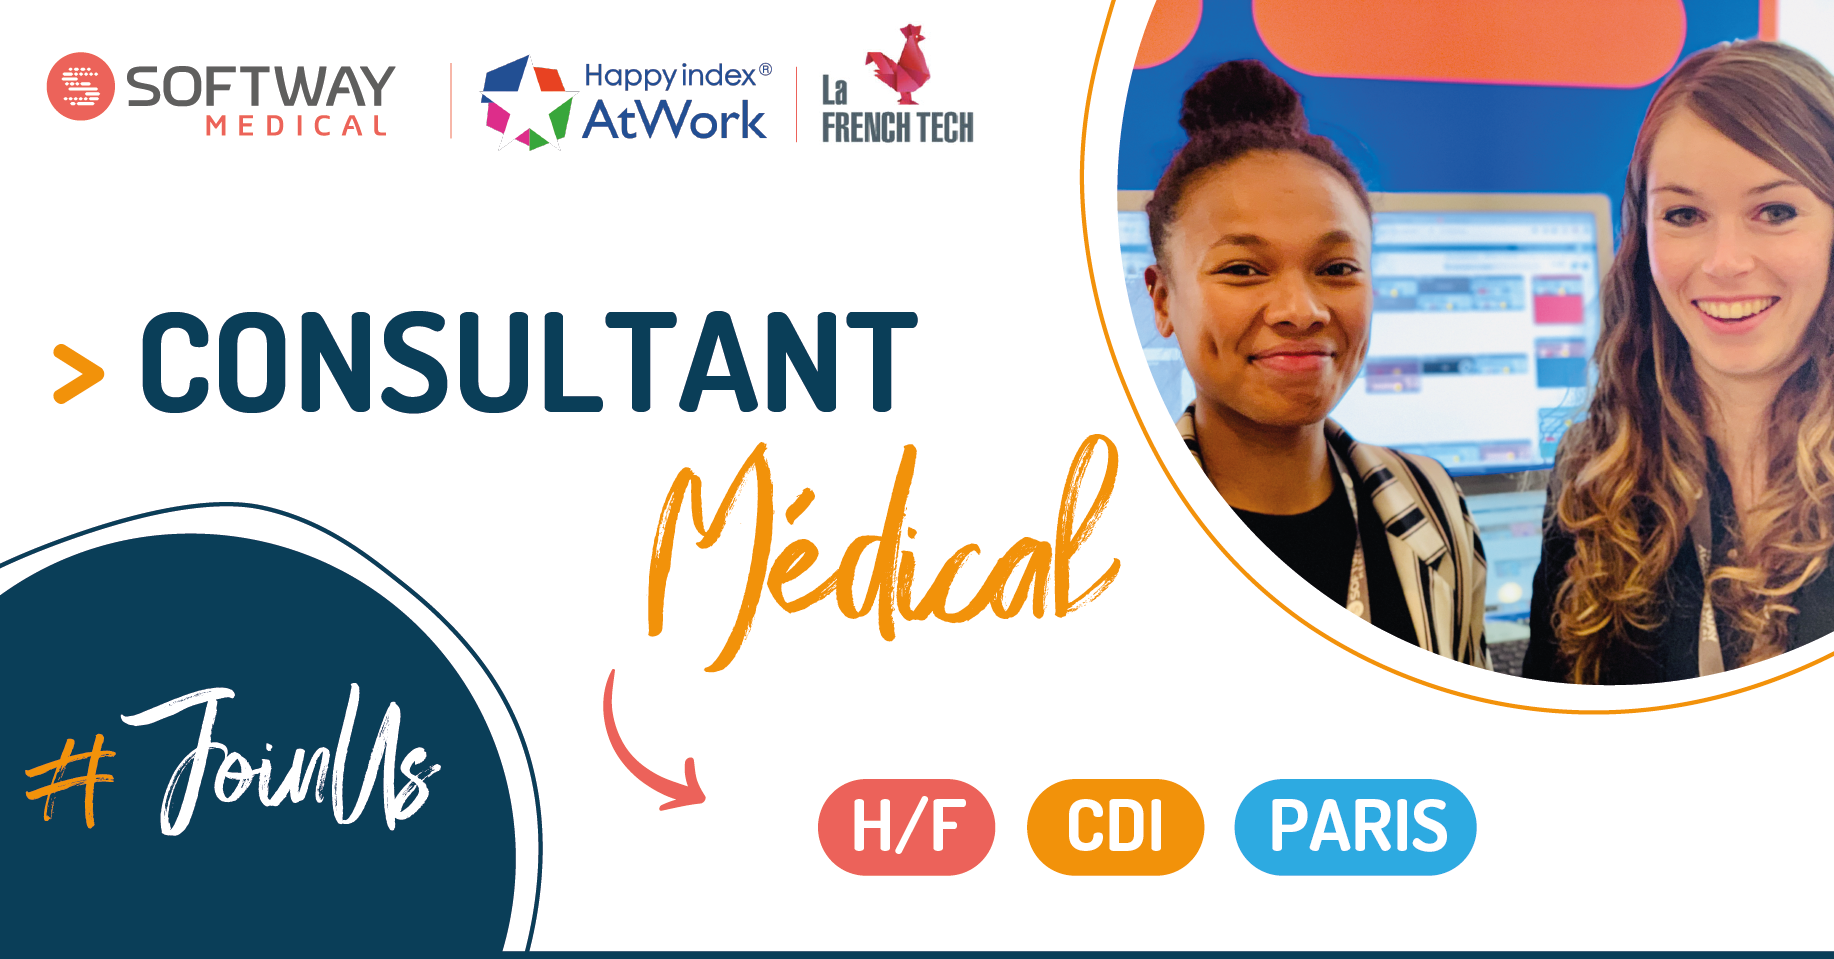 CONSULTANT FONCTIONNEL MEDICAL – H/F – Paris